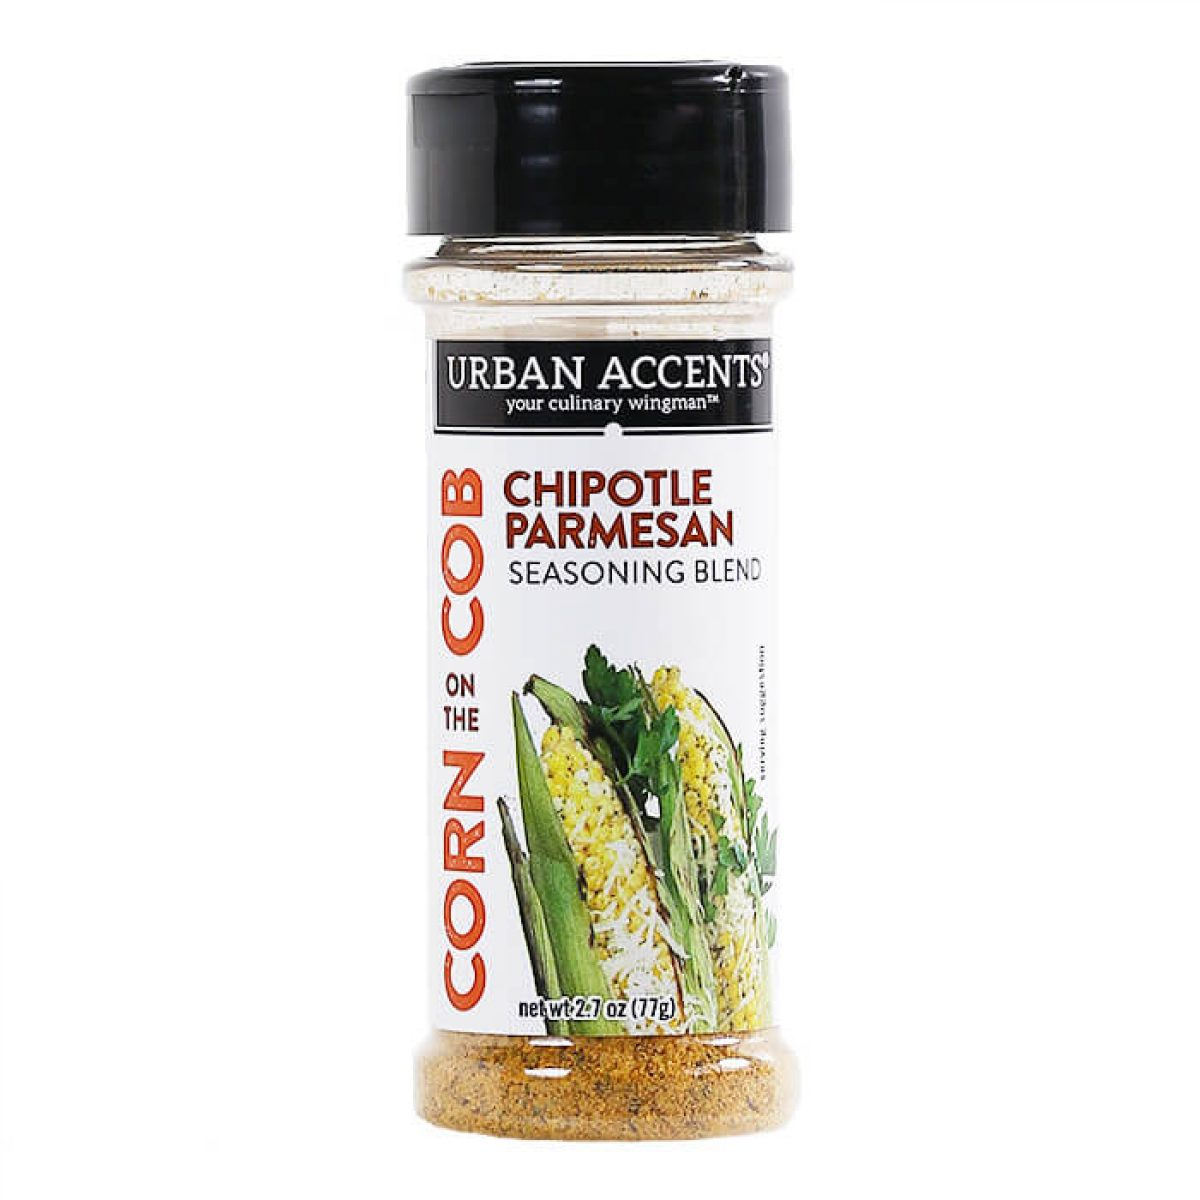 Urban Accents - Chipotle Parmesan Corn On The Cob - Seasoning